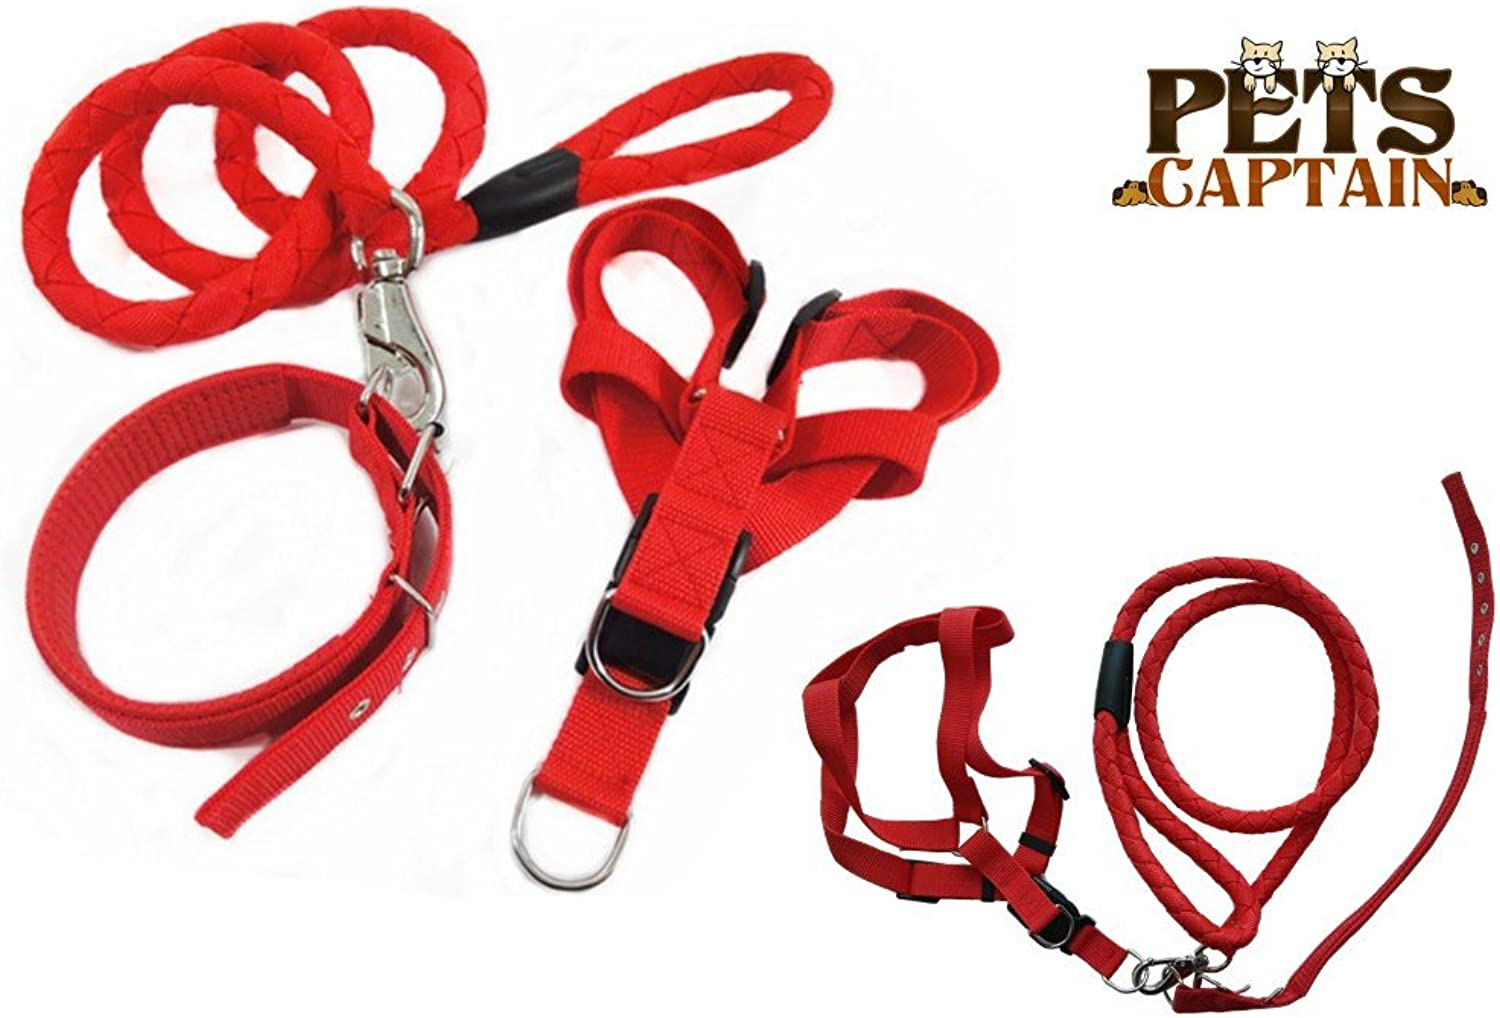 PetsCaptain Pet Leash,Harness,and Collar Bundle Set for Medium Dogs and Cats, Red, Medium, OWL3REDM